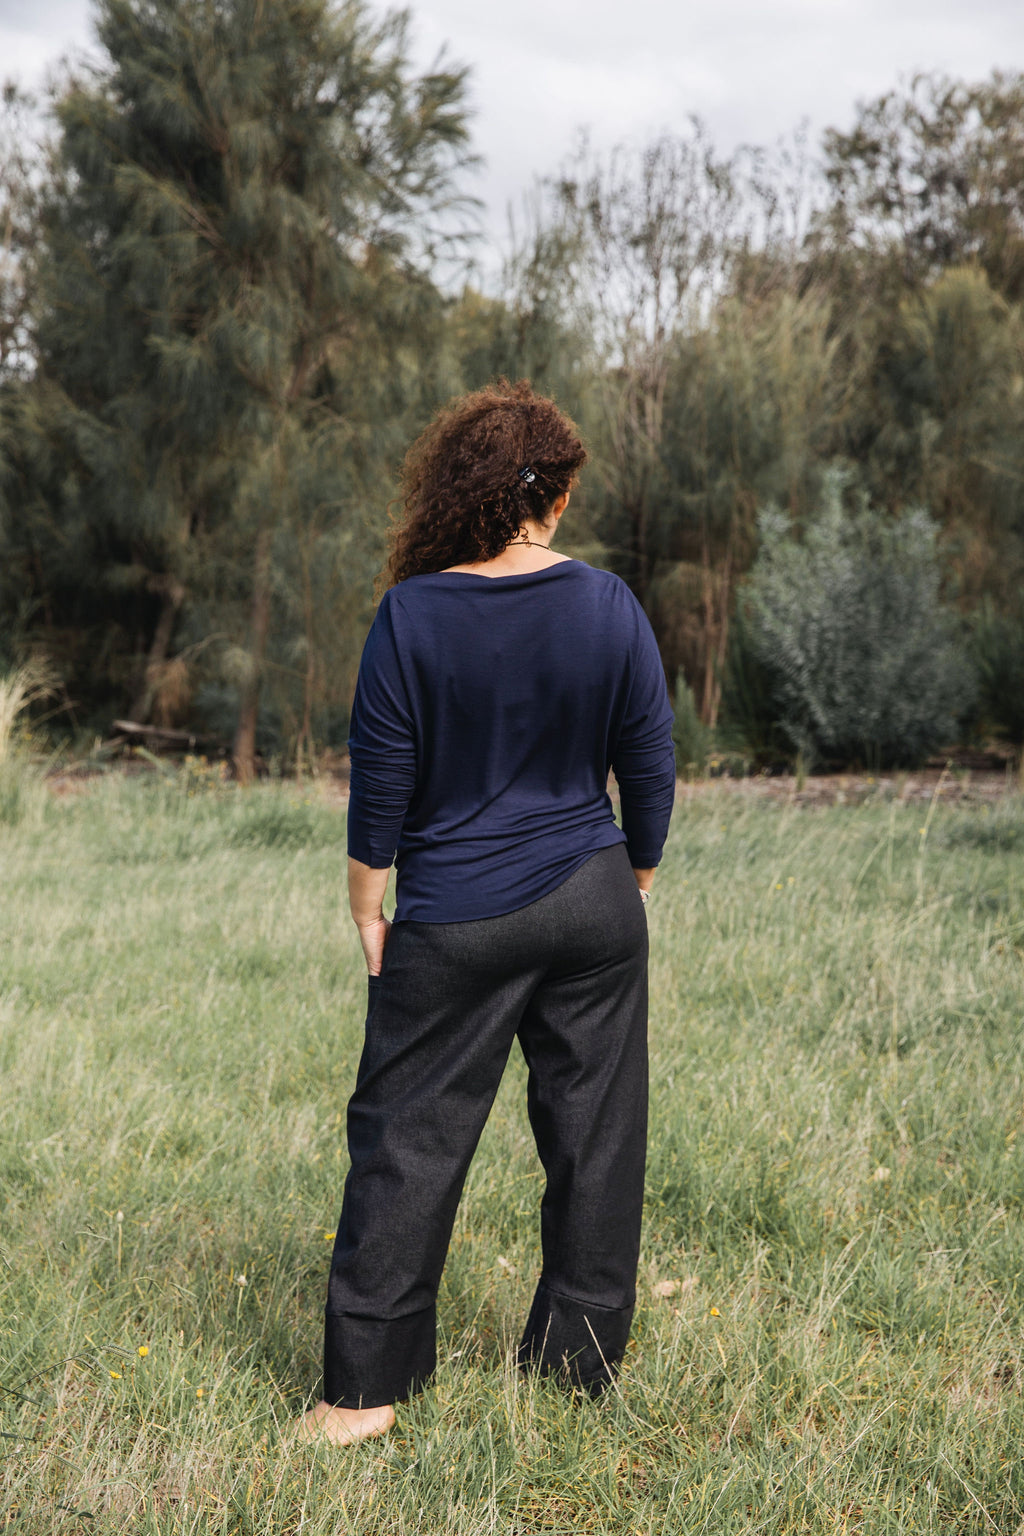 Ethically made black denim stretch pants with pockets and three-quarter cuff.